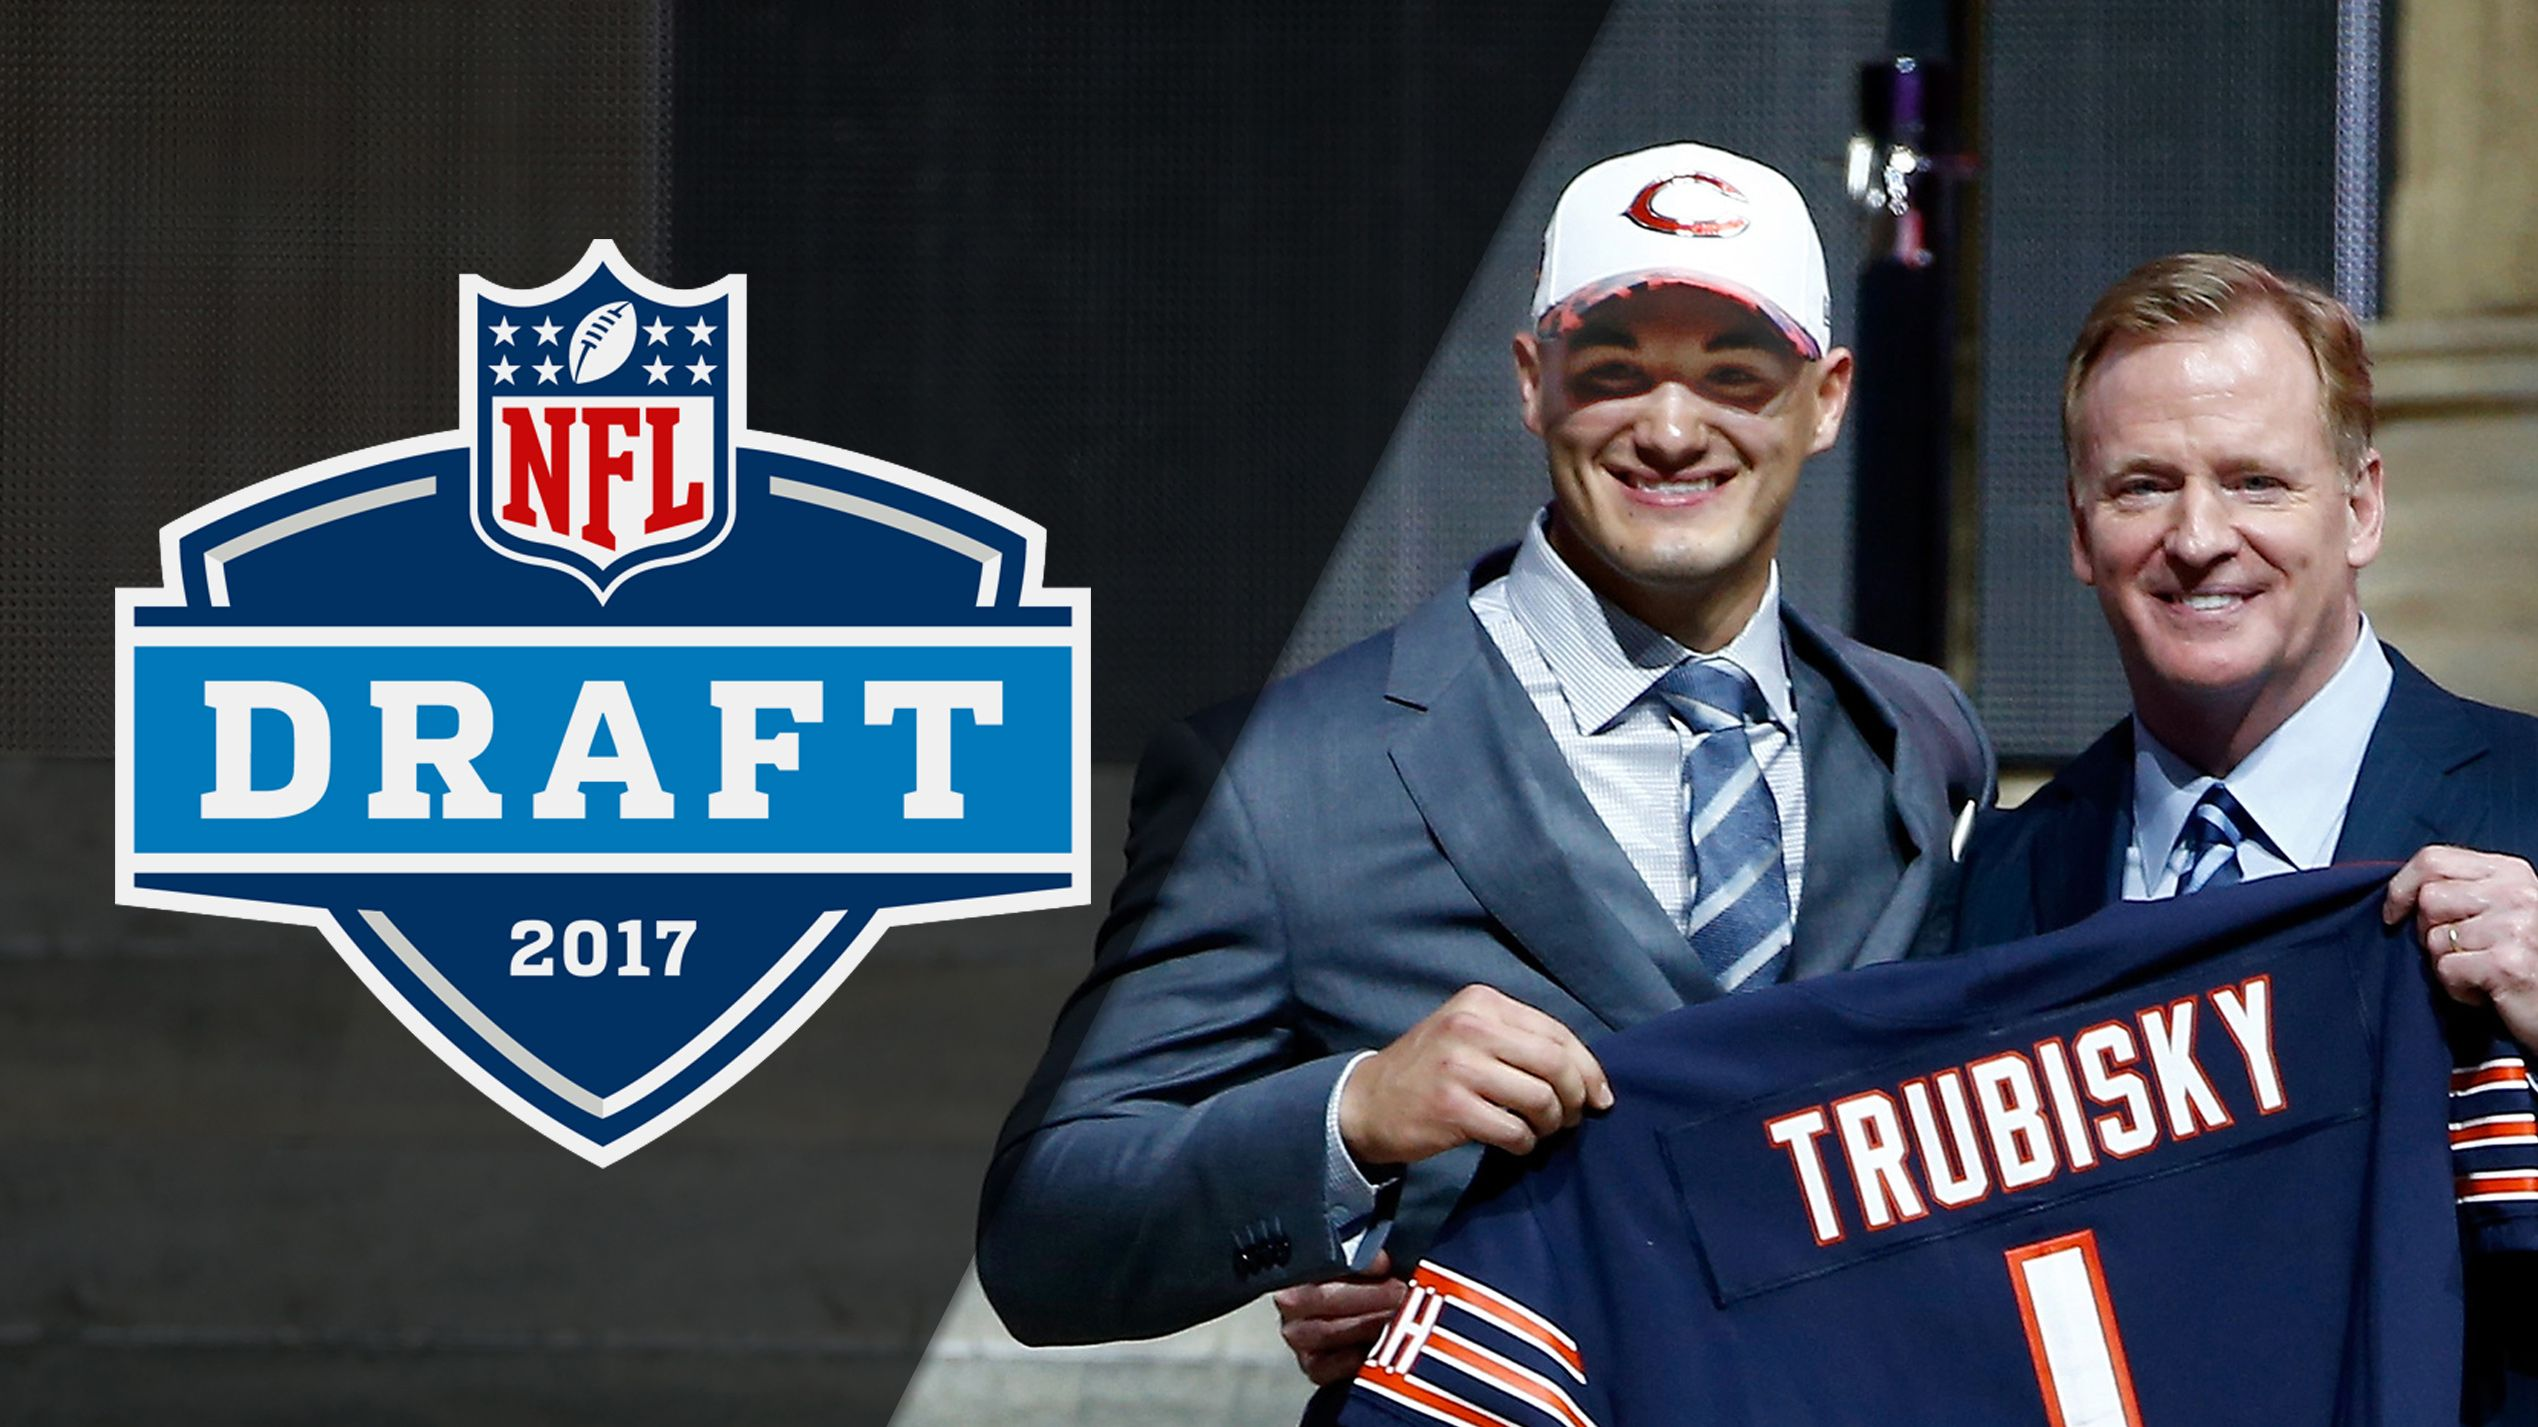 2017 NFL Draft Presented by Courtyard (Round 1)